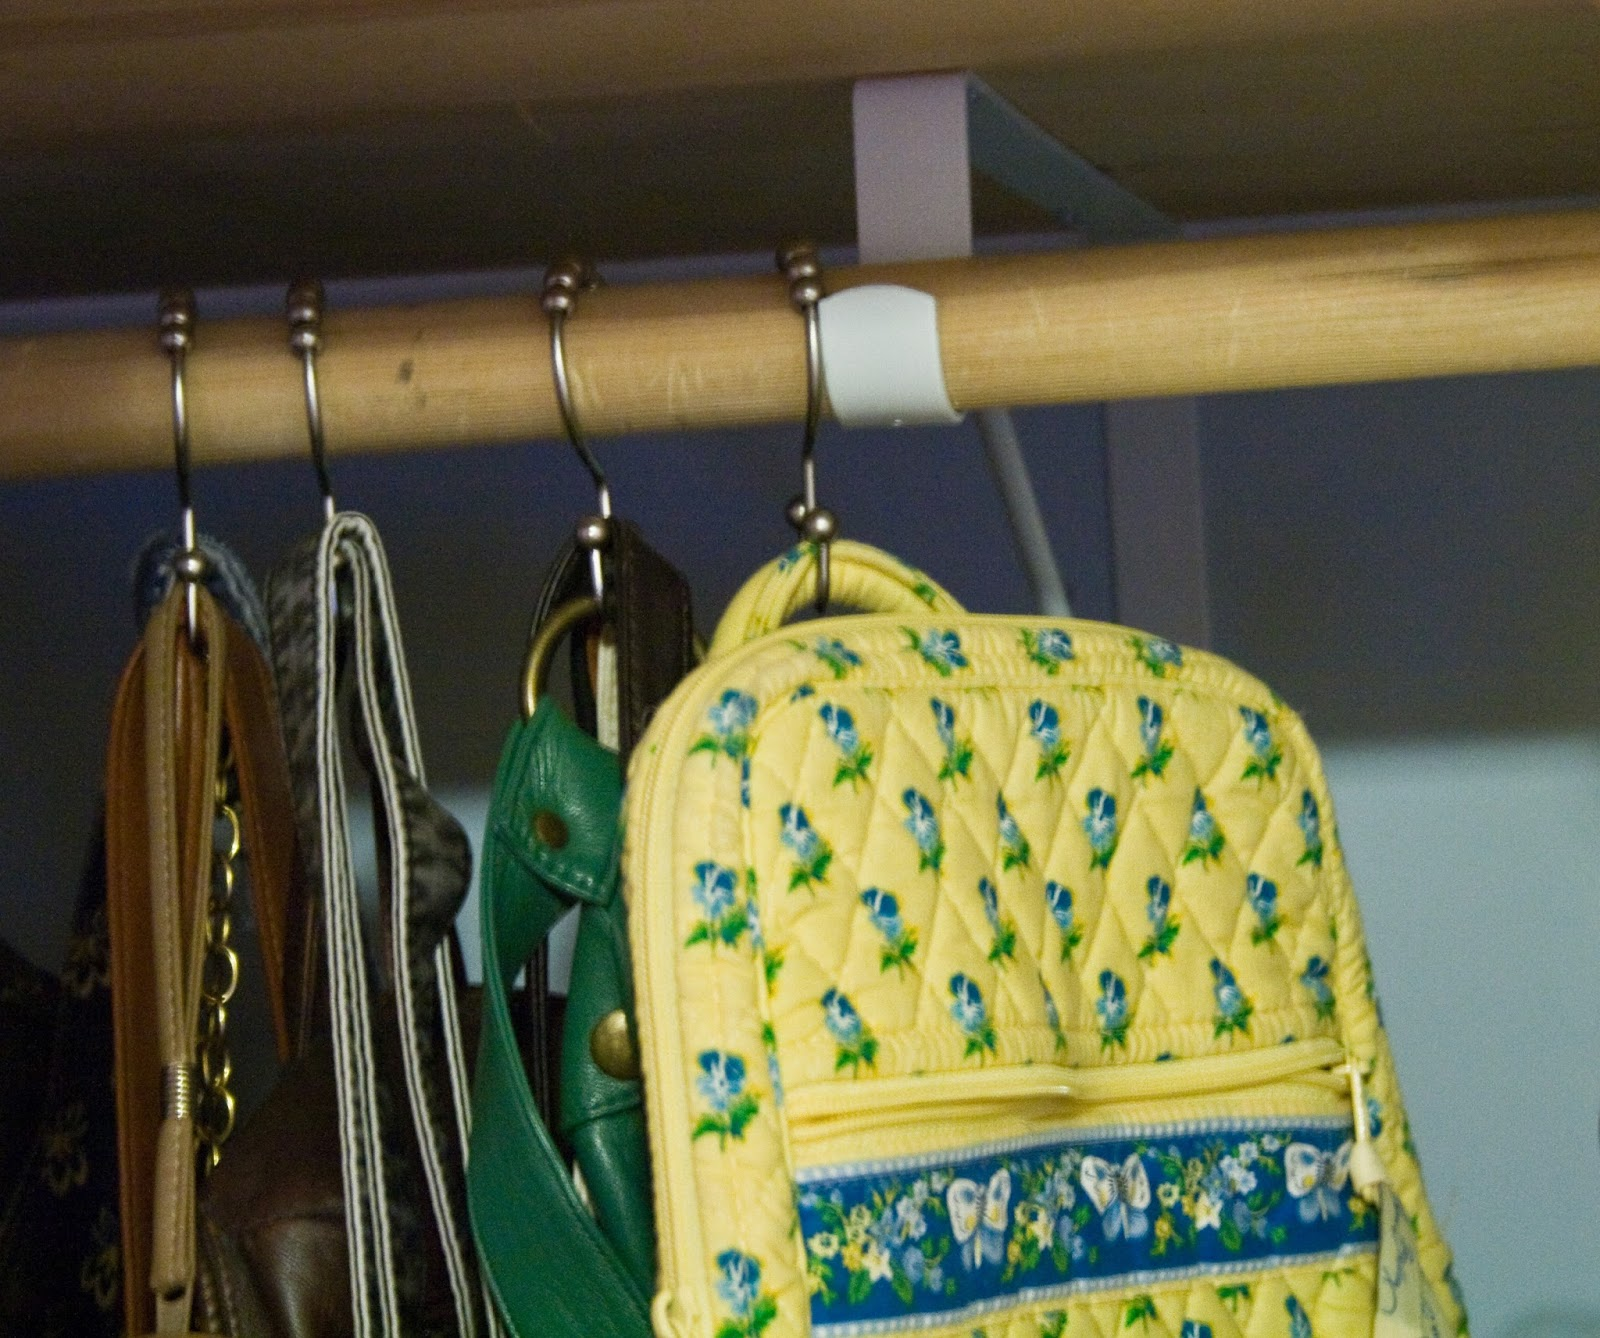 Five sixteenths blog wednesday decor three ways to use for Hooks to hang purses